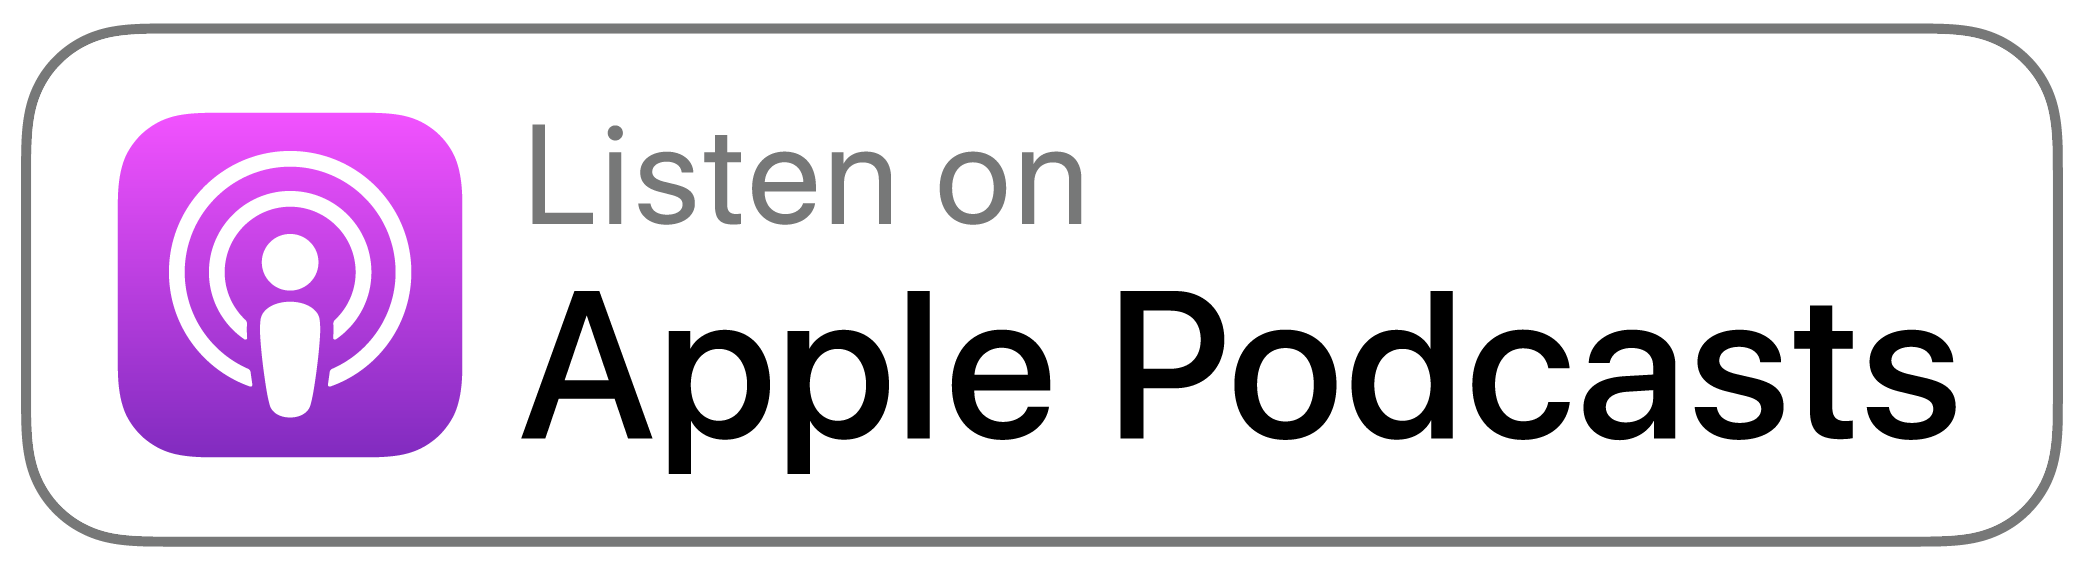 Outspoken-Voices-Graphics-Master_apple-podcasts.png